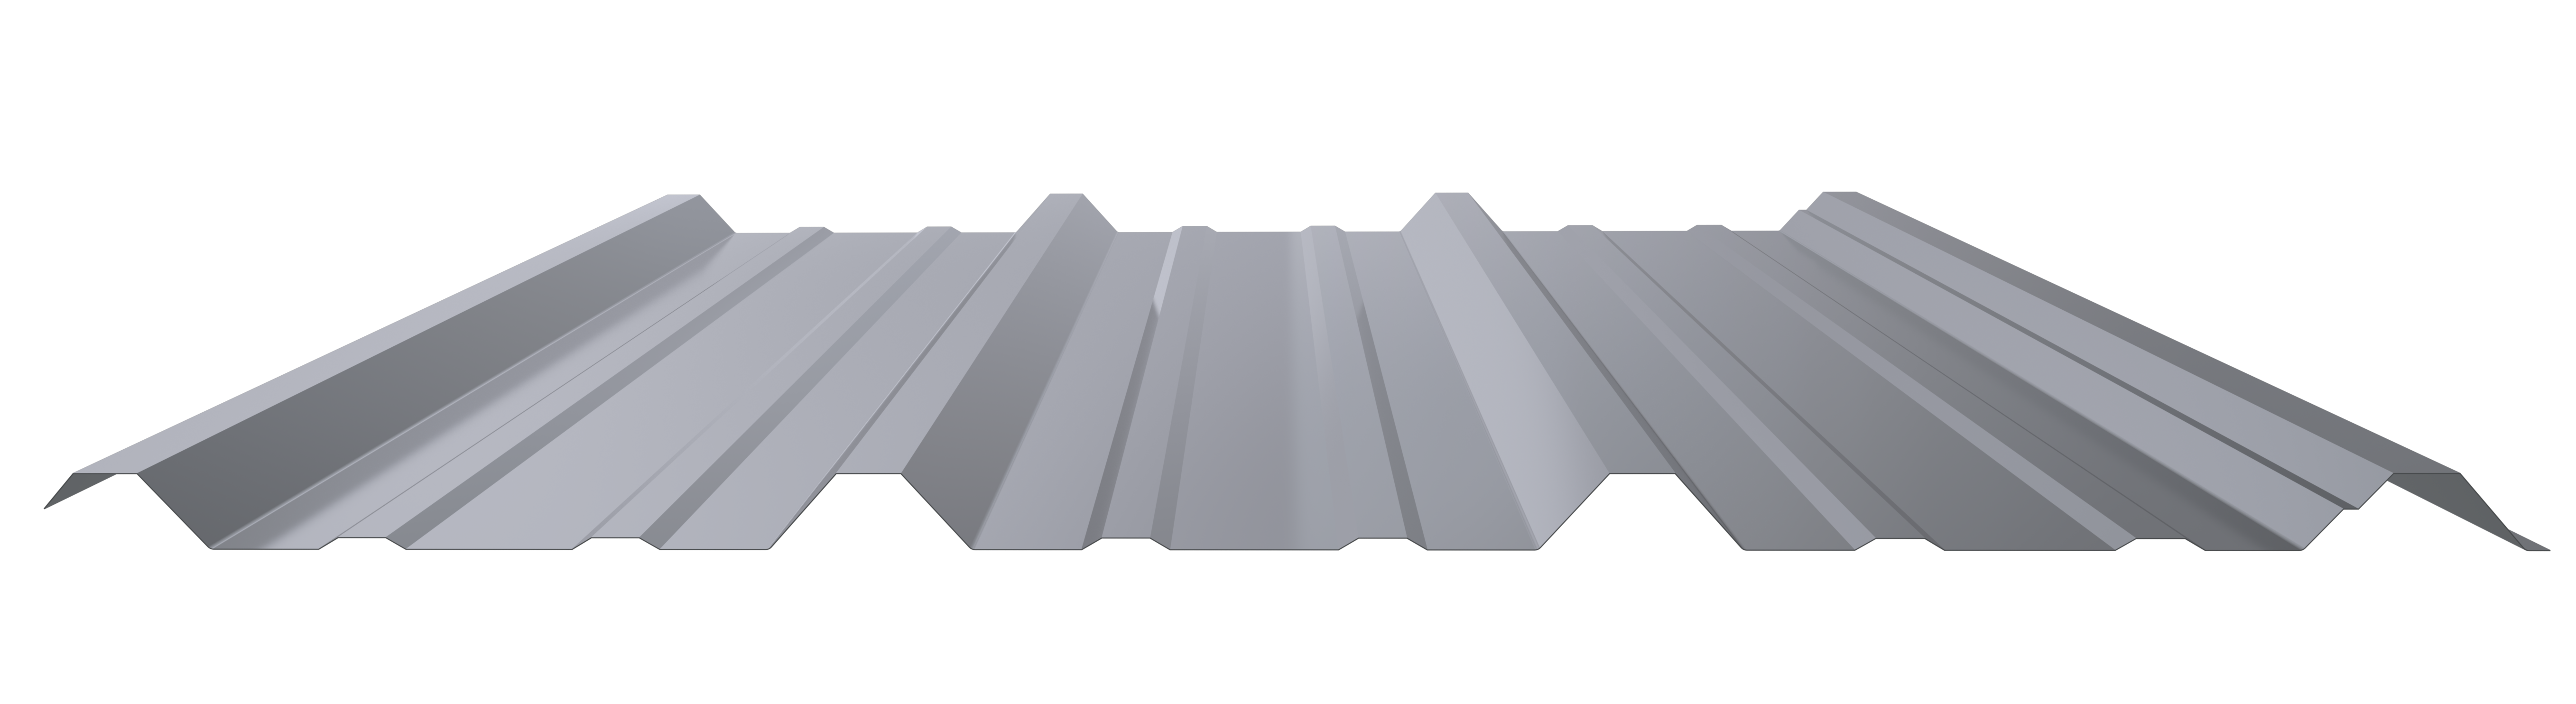 Steel Roof Panels Png Free Steel Roof Panels Png Transparent Images 105593 Pngio